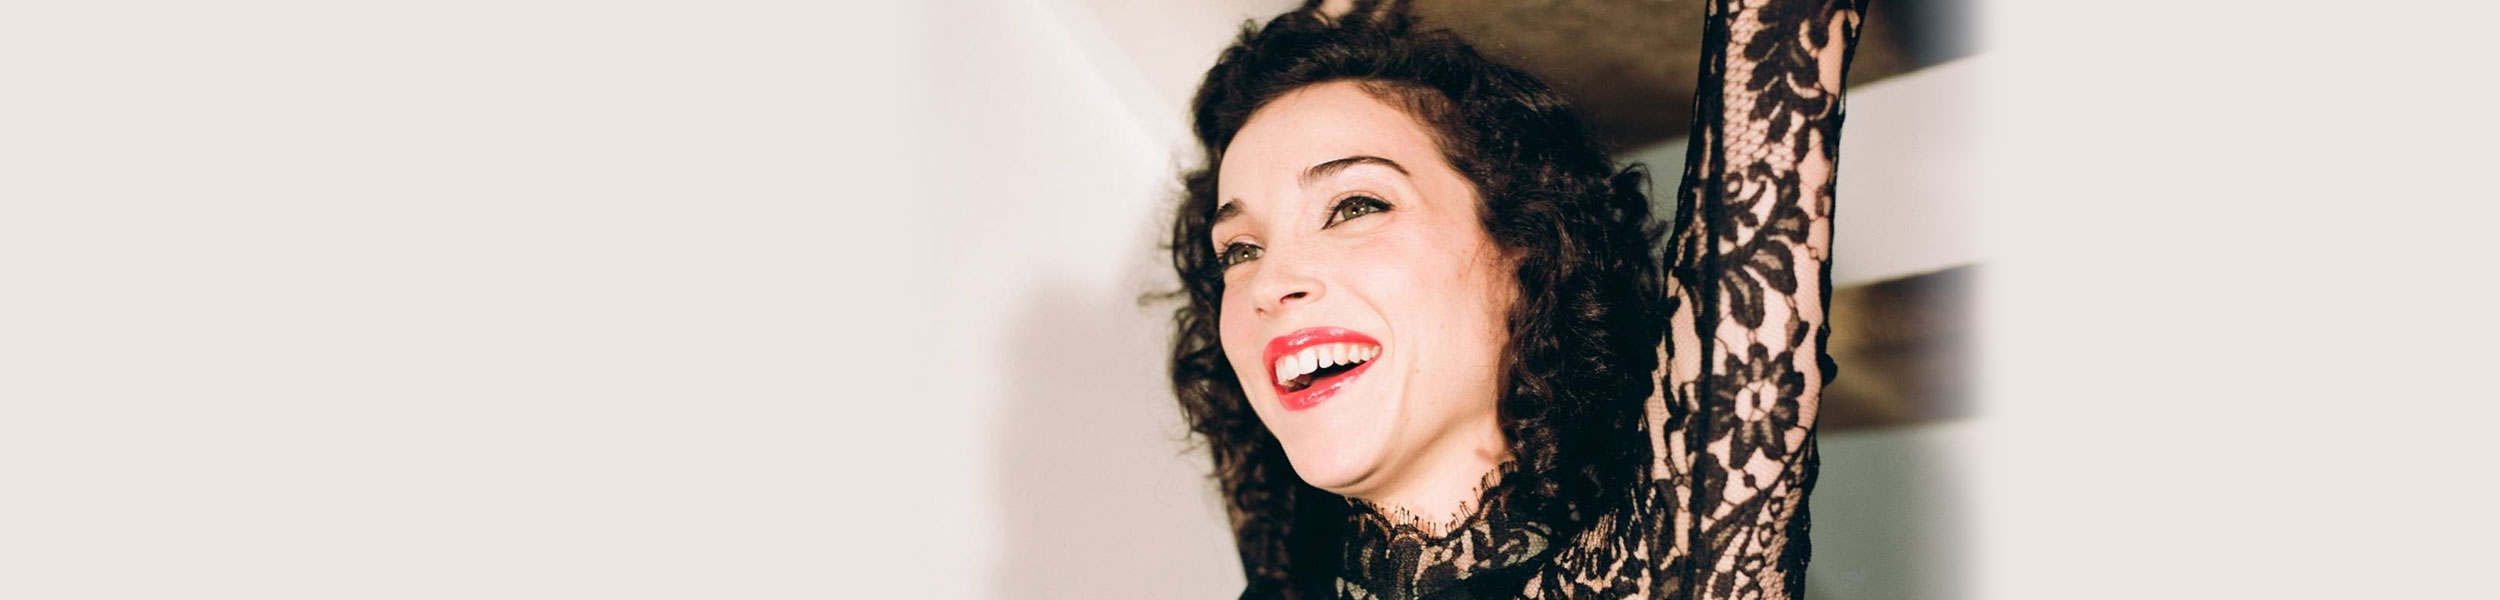 St. Vincent - St. Vincent To Tour Europe This Winter